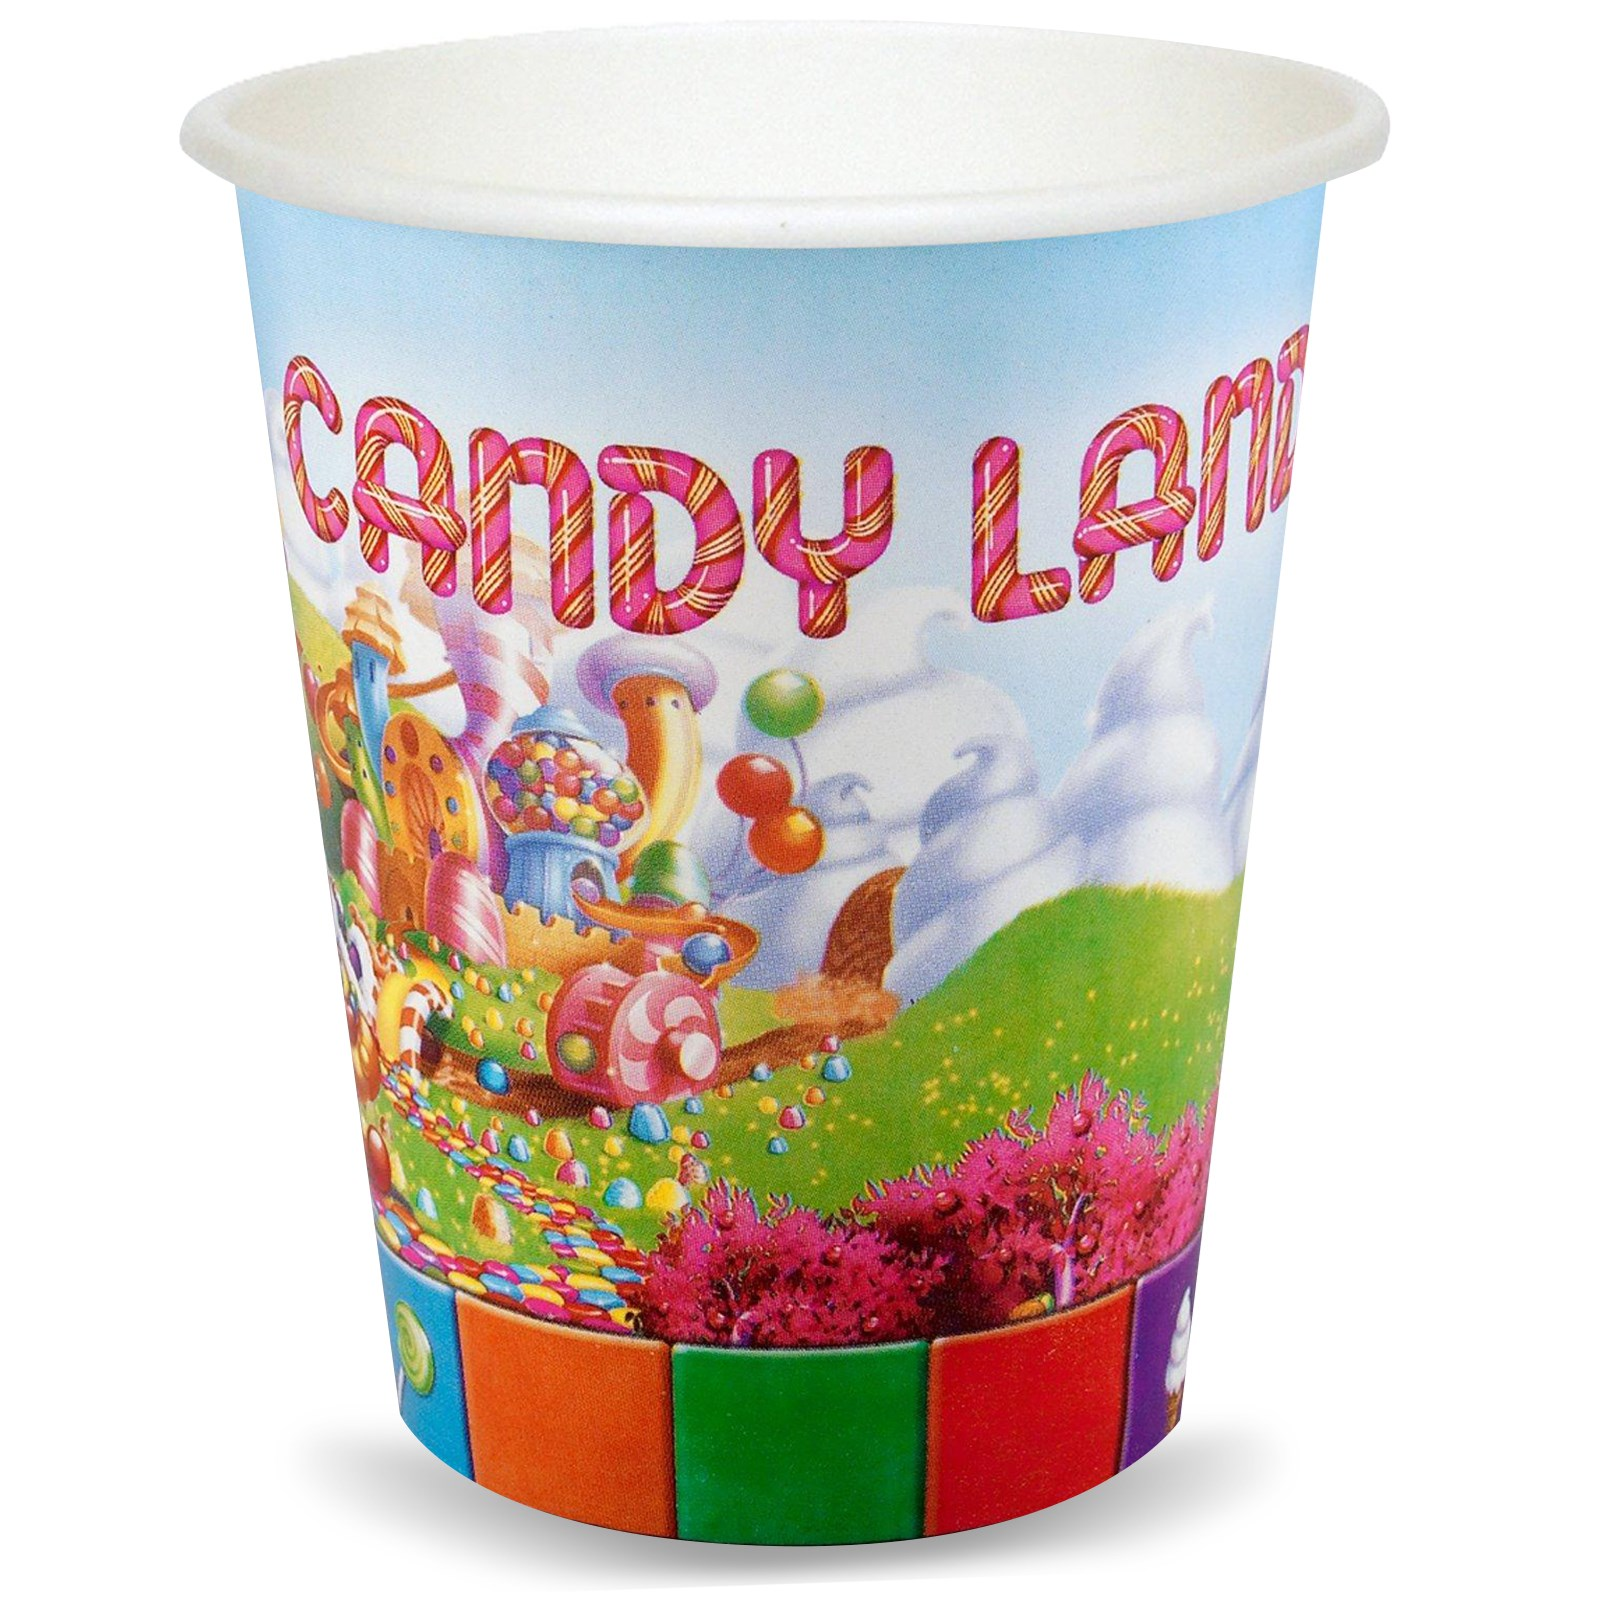 Candy Land 9 oz. Paper Cups